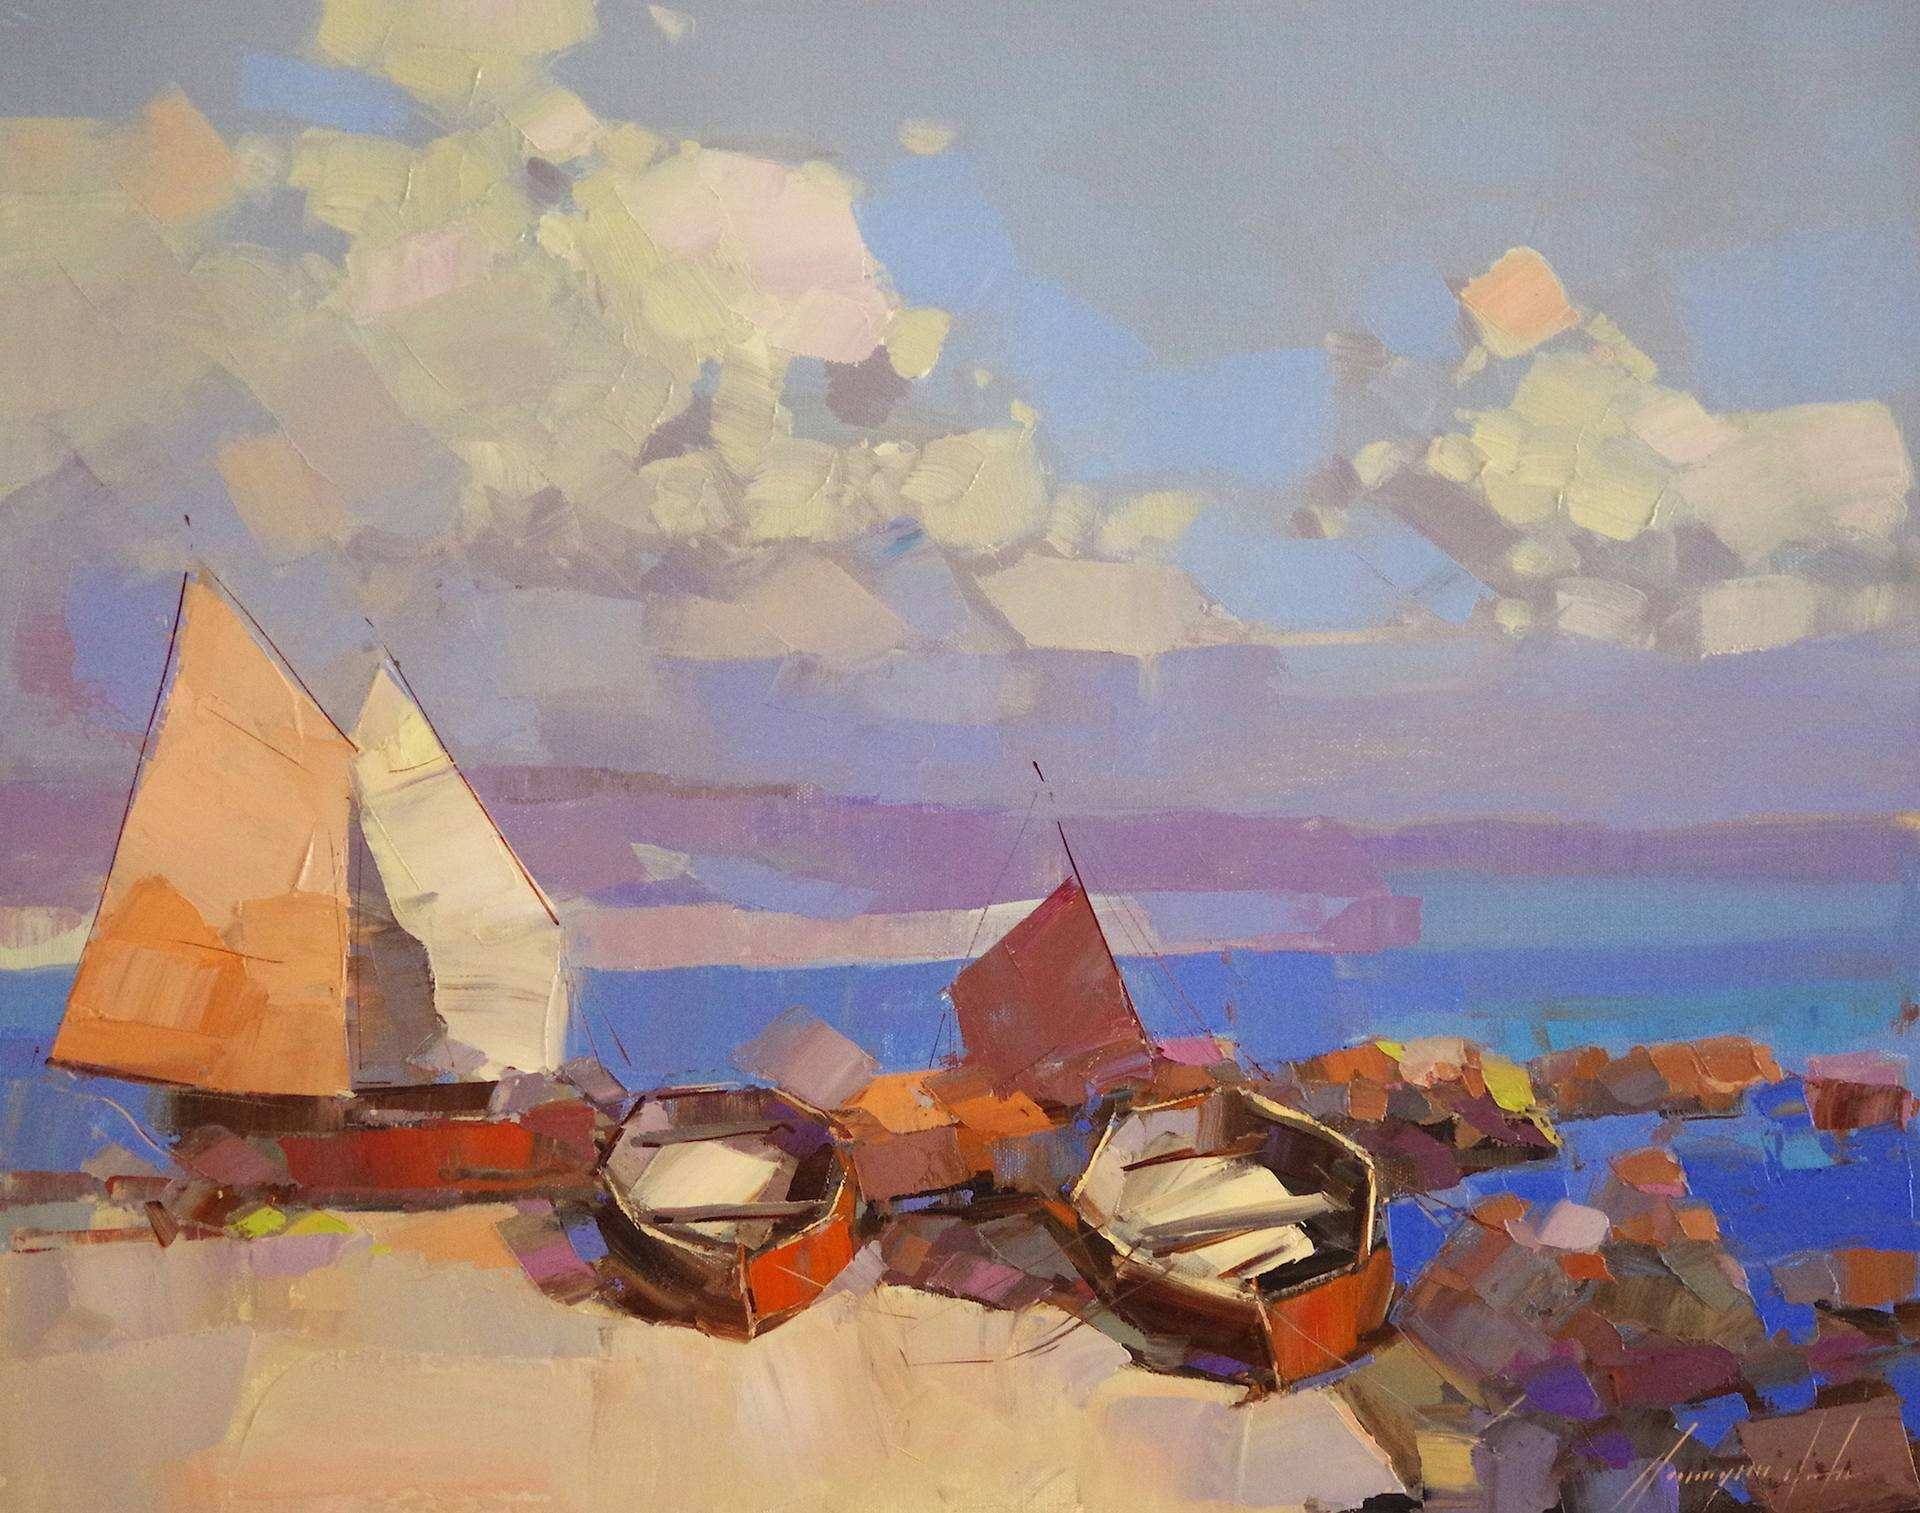 Saatchi Art Sail Boats Original oil painting by palette knife e